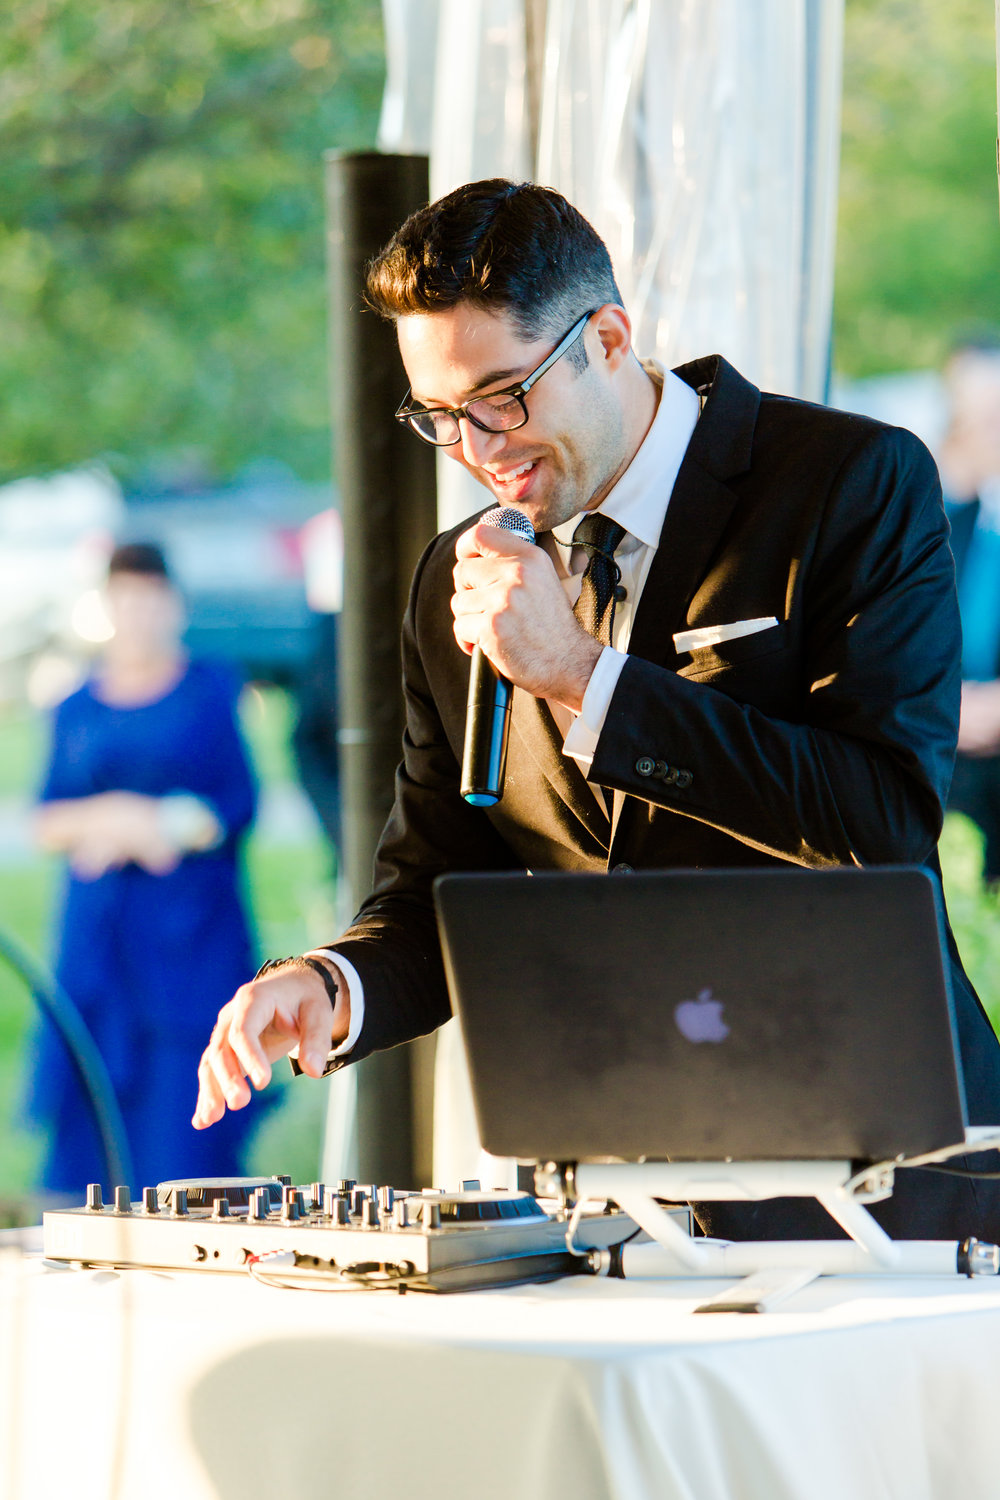 dv entertainment charlottesville wedding staunton wedding gaie lea wedding DJ eric and lindsay DJ David verde